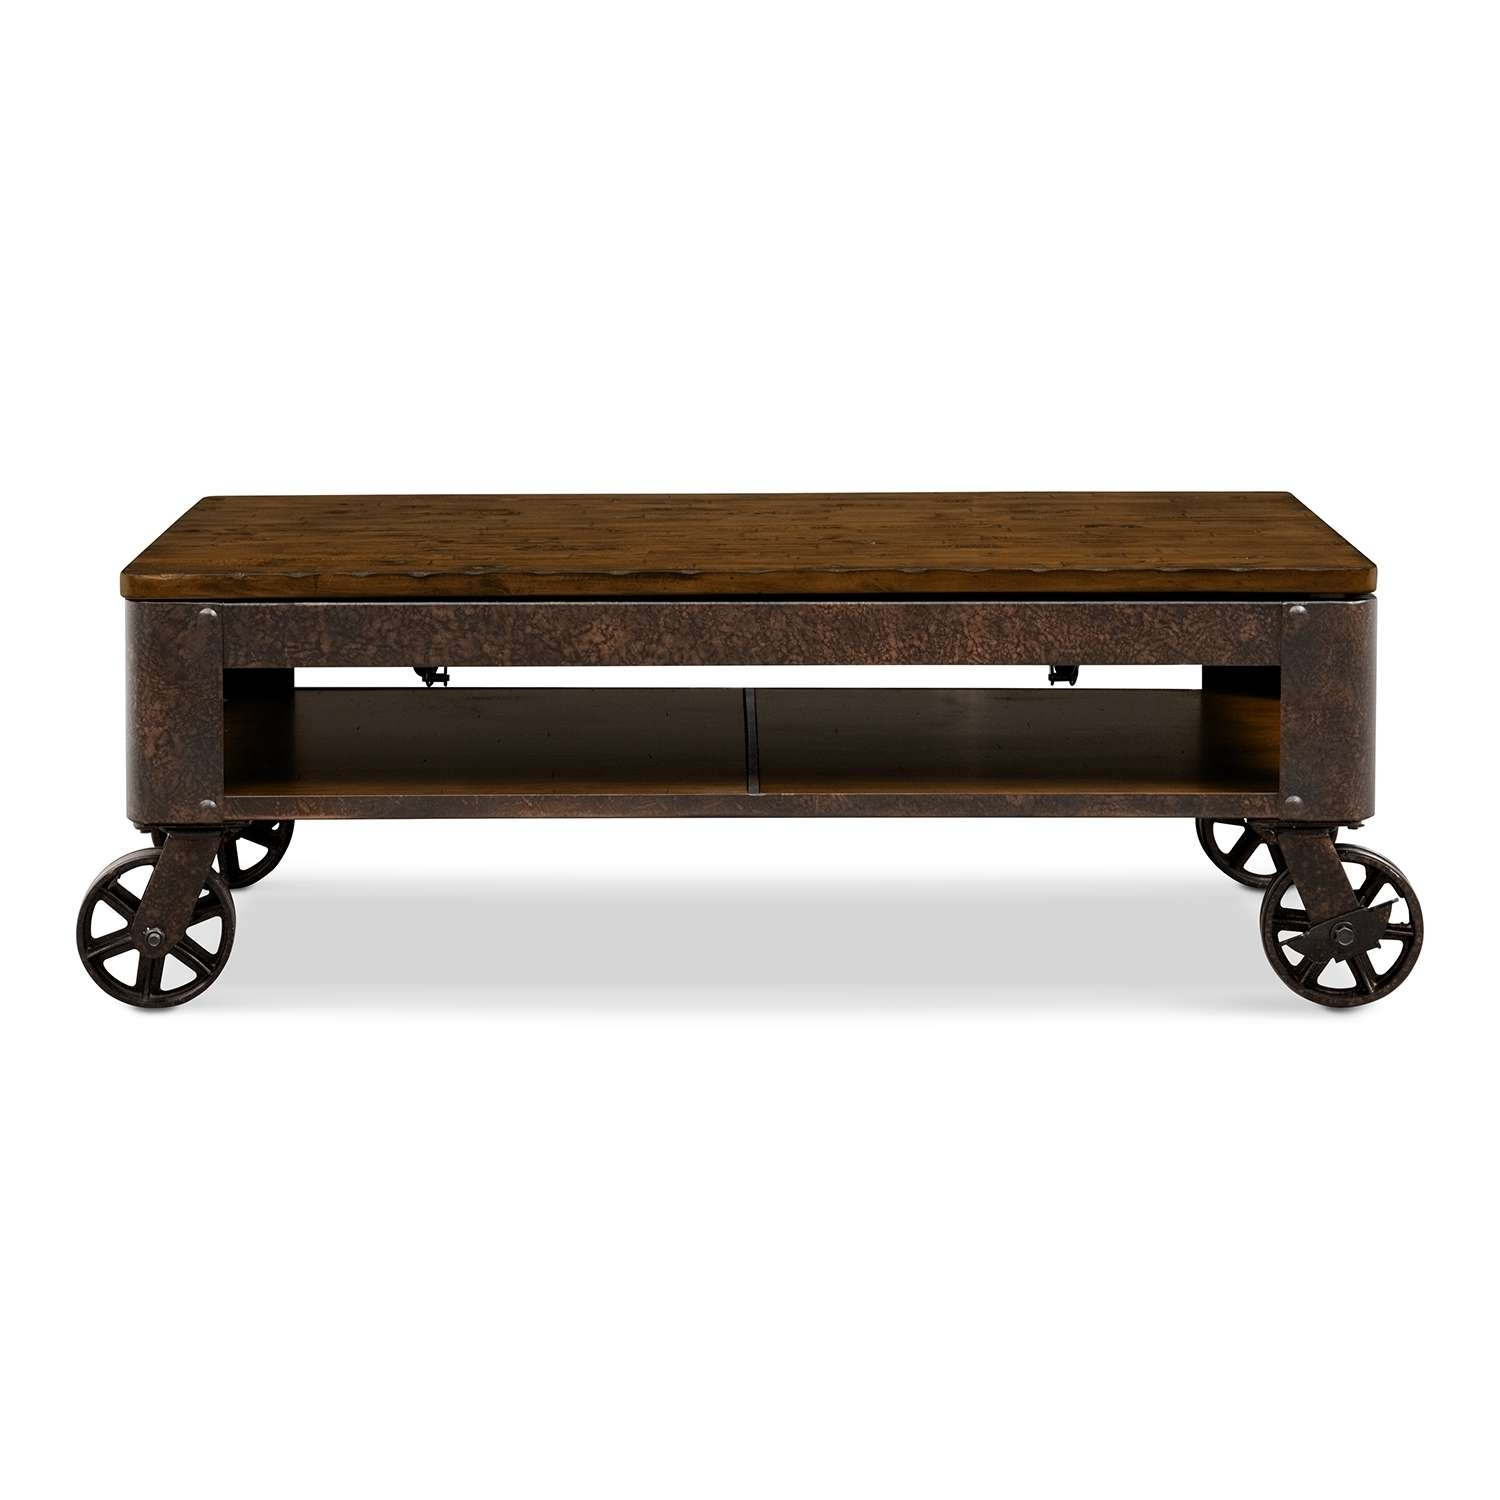 Popular Coffee Tables With Wheels Within Coffee Tables Ideas: Rural Traditional Coffee Table With Wheels (View 18 of 20)